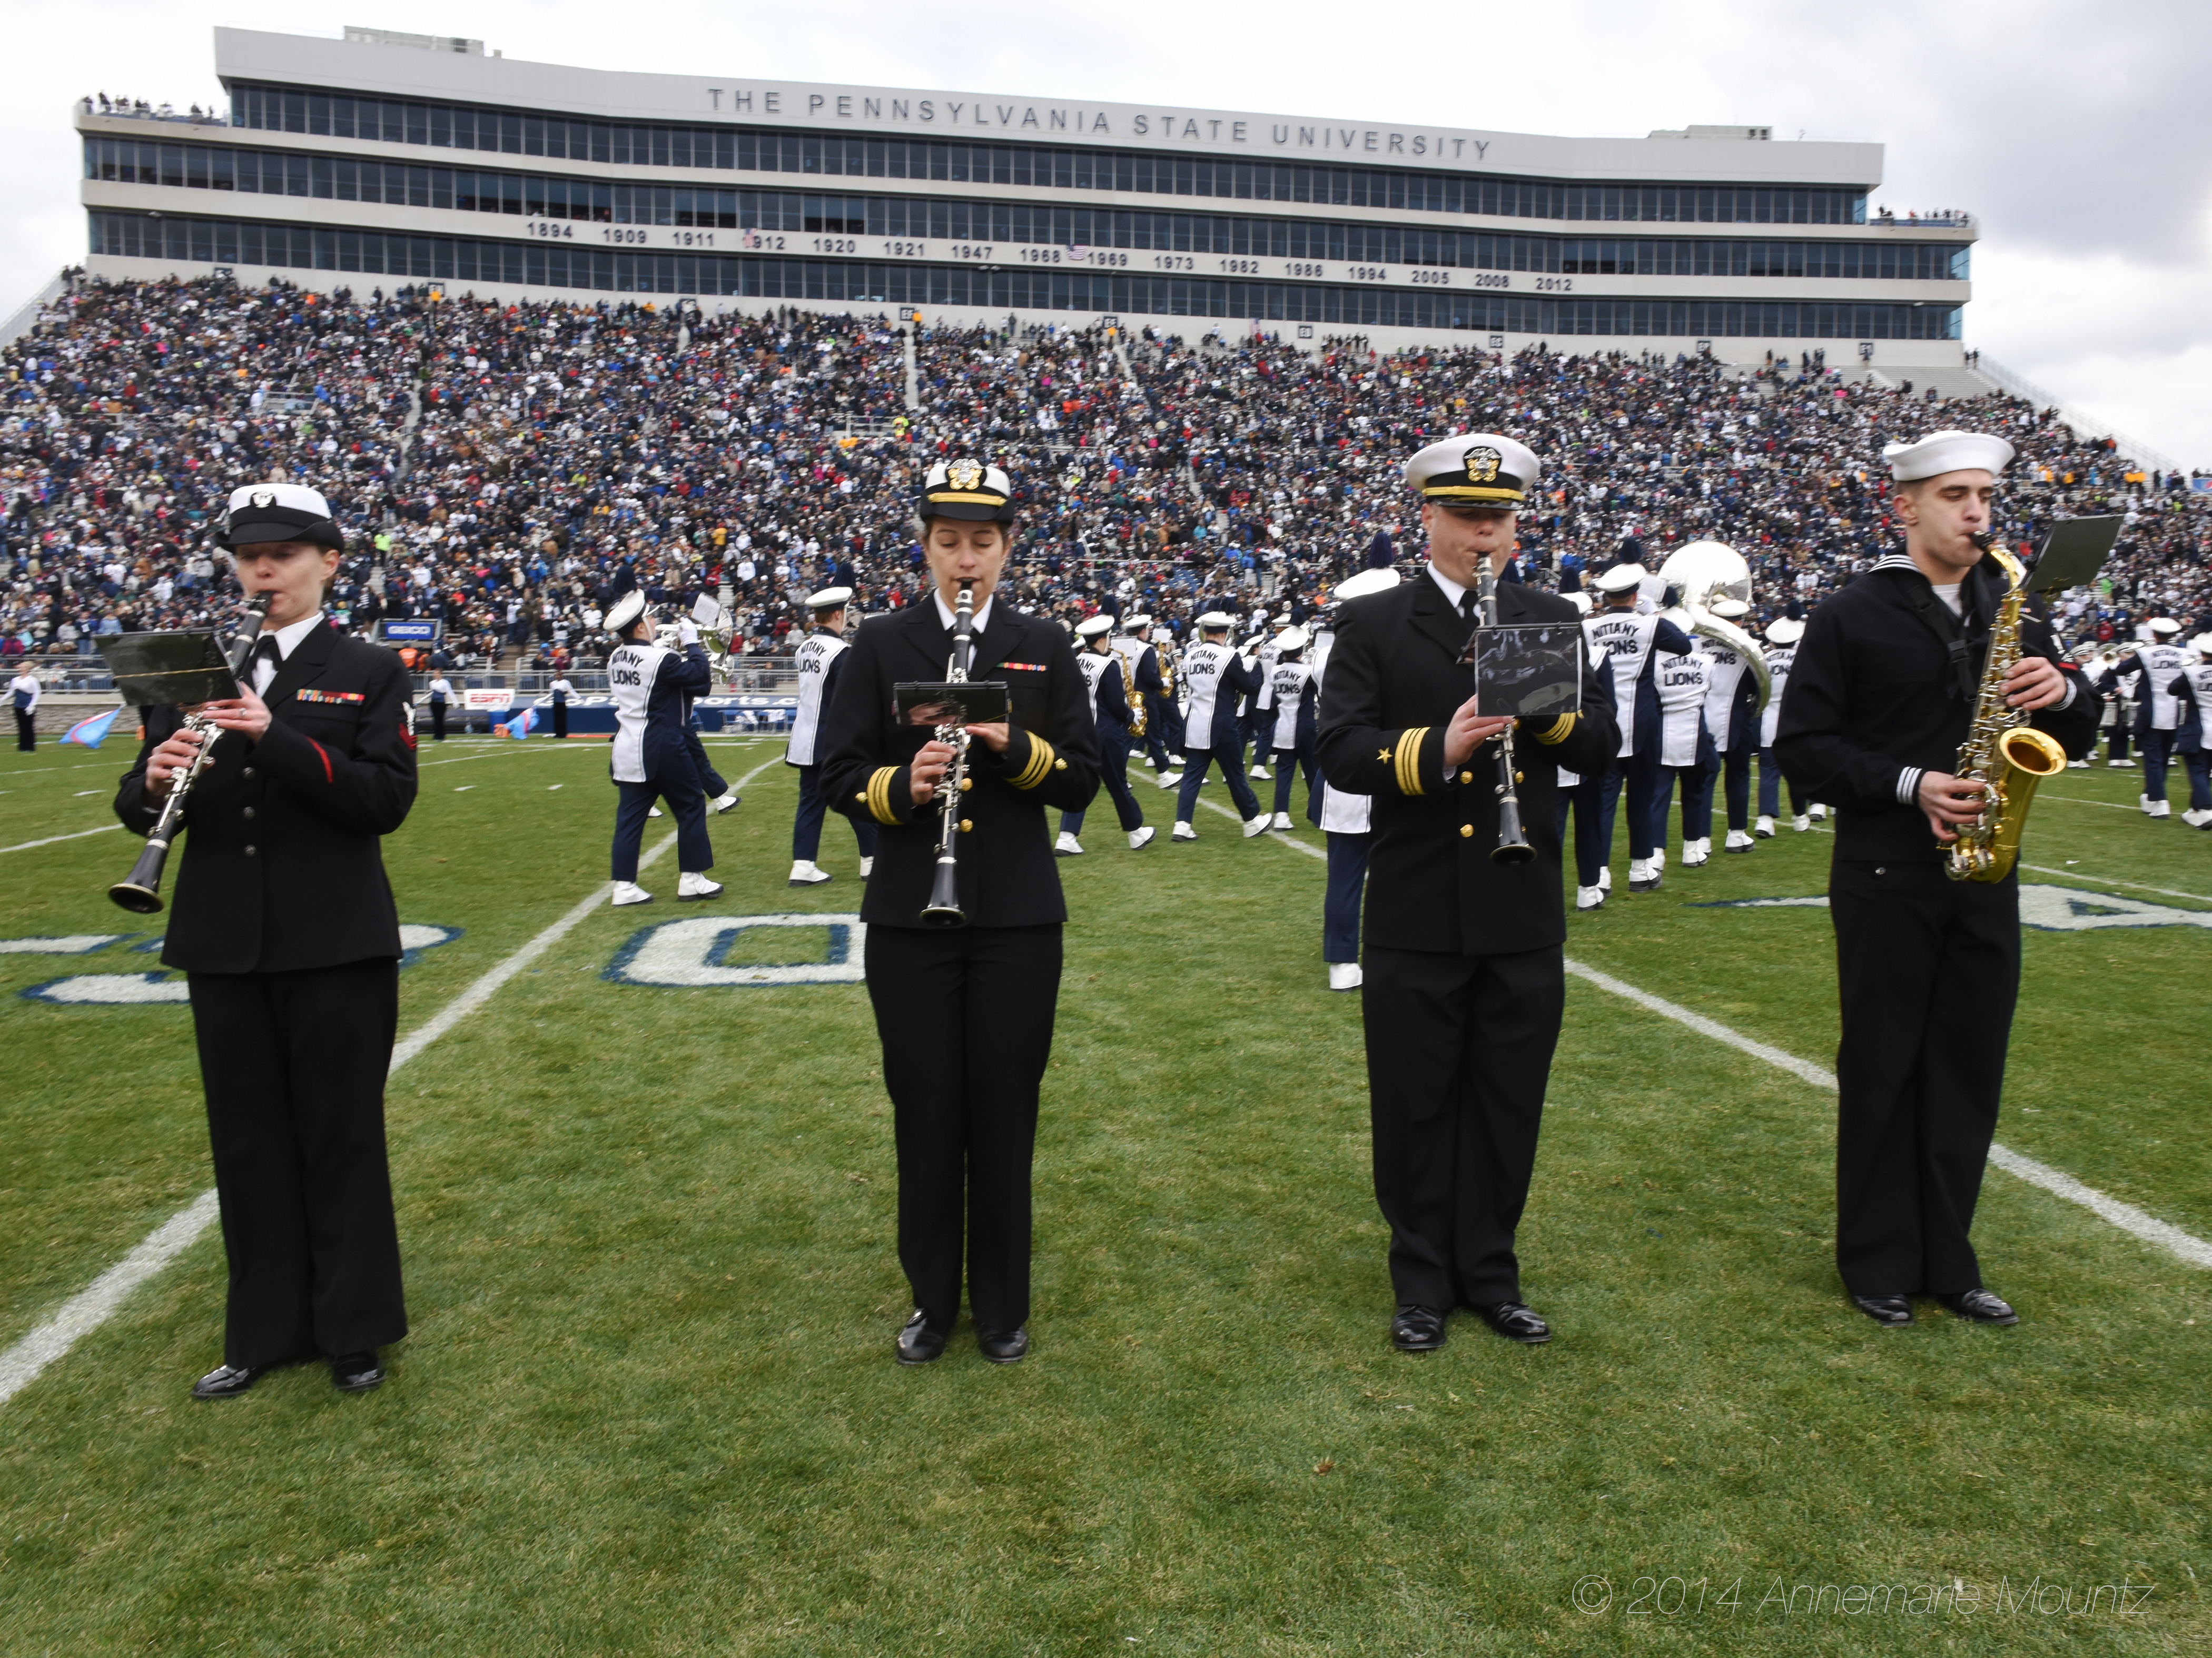 Penn State Blue Band alumni on active duty returned to Beaver Stadium to perform with the band for Military Appreciation Day, Nov. 15, 2014.